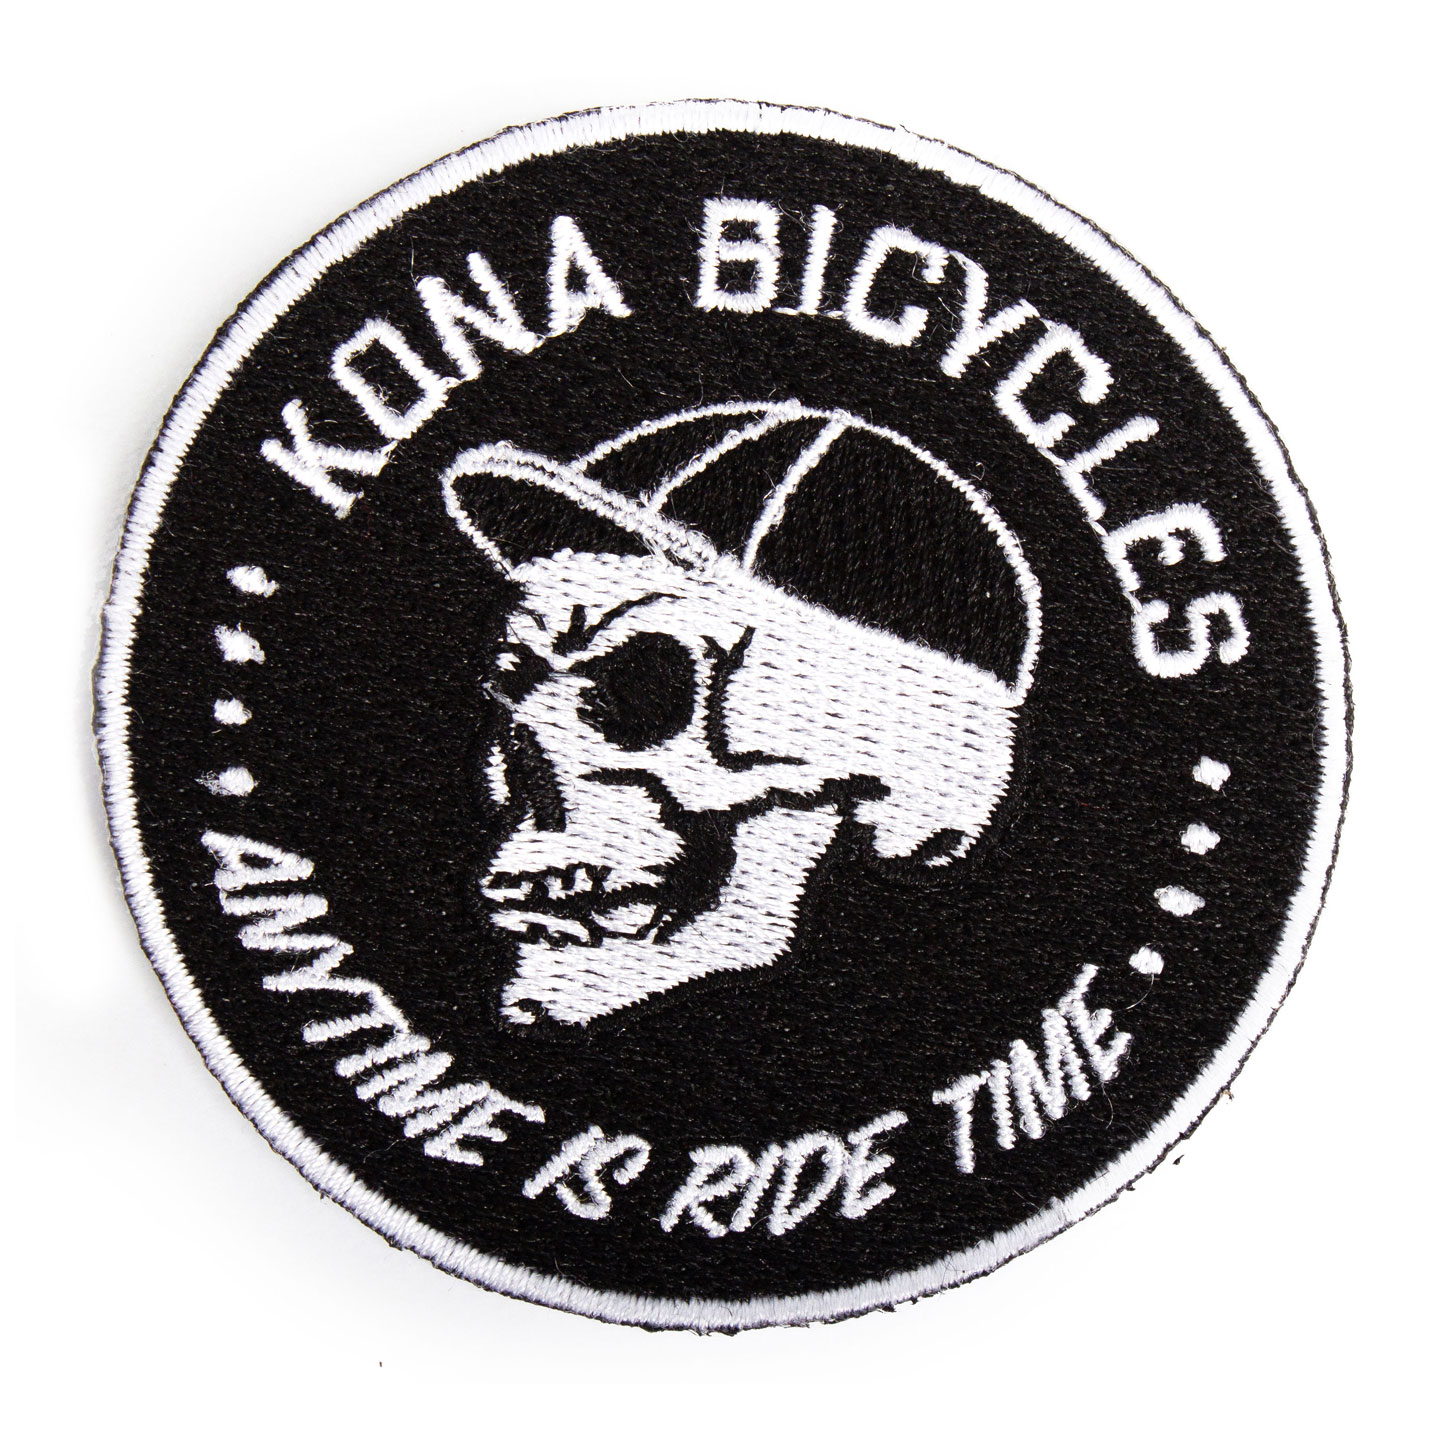 New Kona Patches Available Now